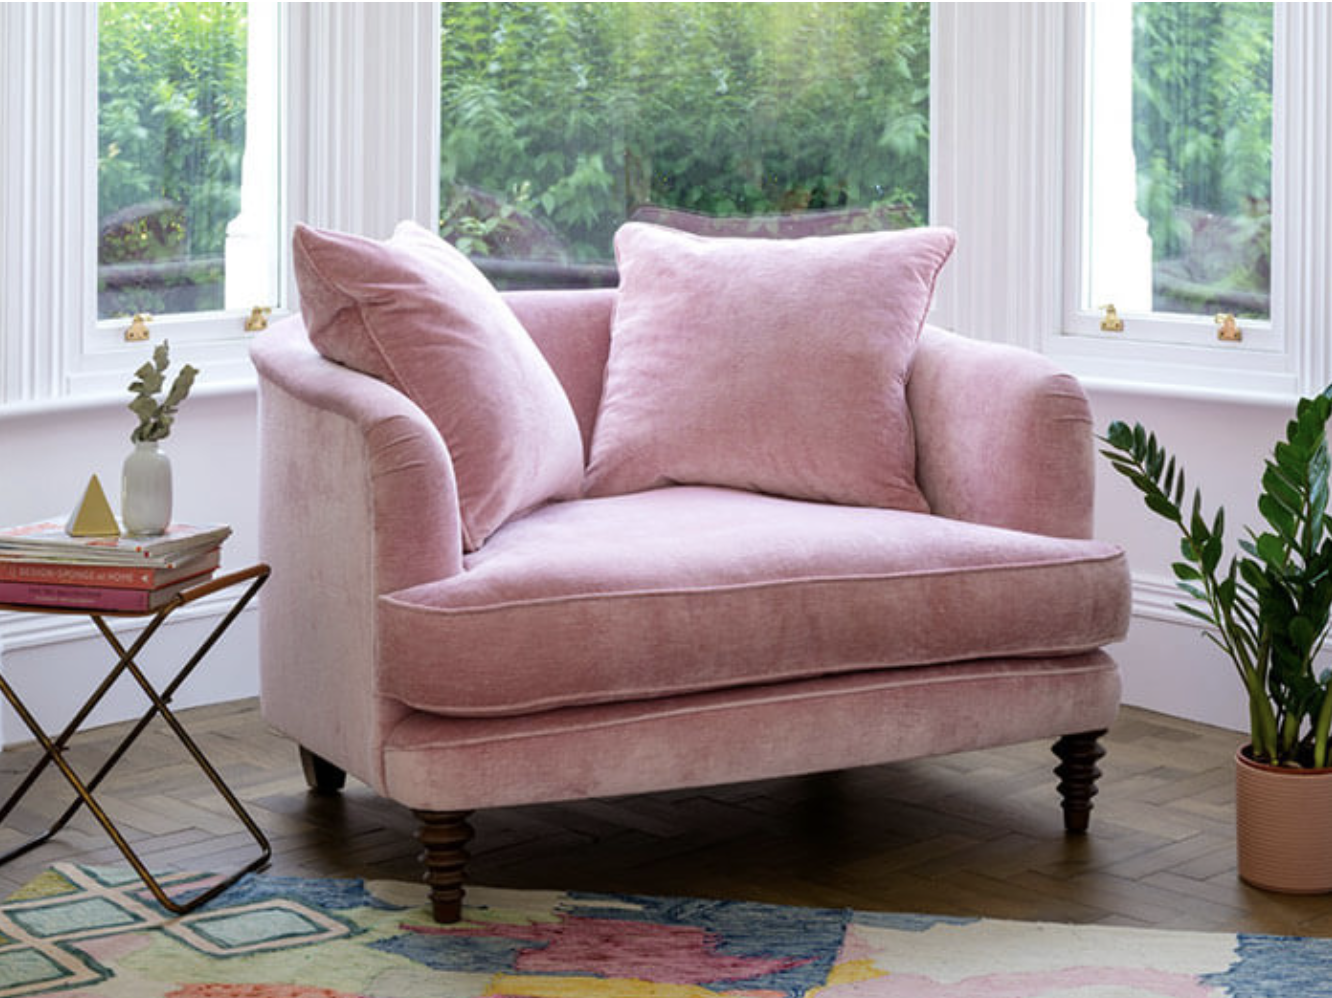 Sink in comfort..Helmsley chair from Sofas & Stuff